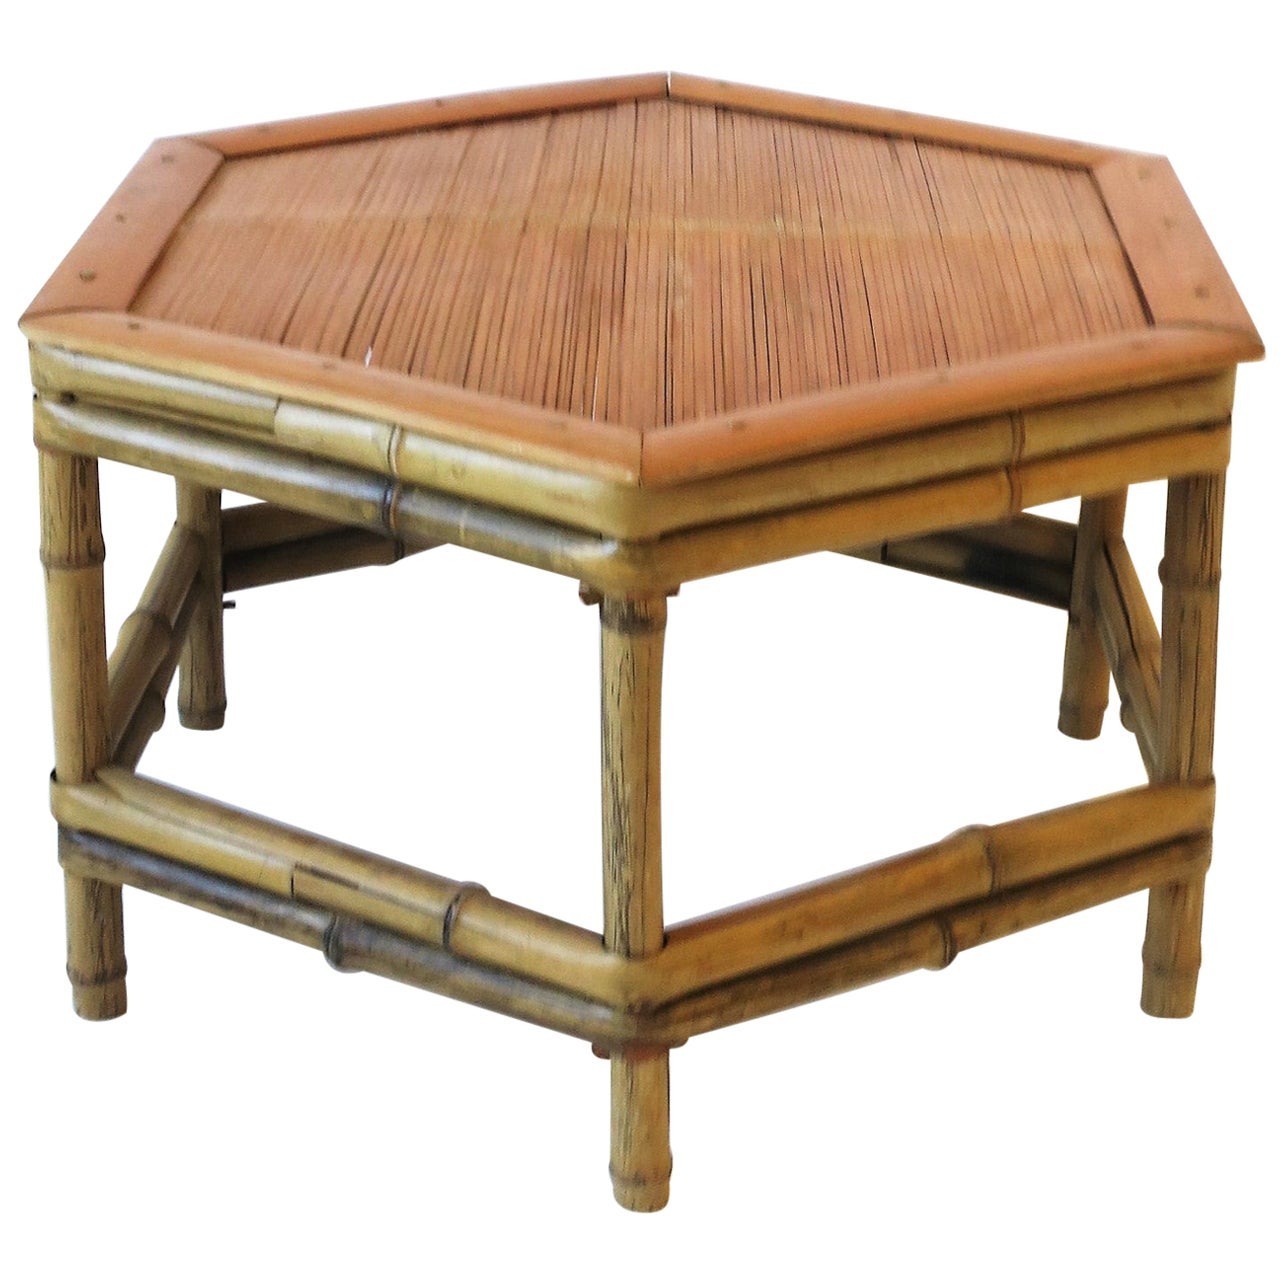 Bamboo Pedestal Side Table or Plant Stand, Low